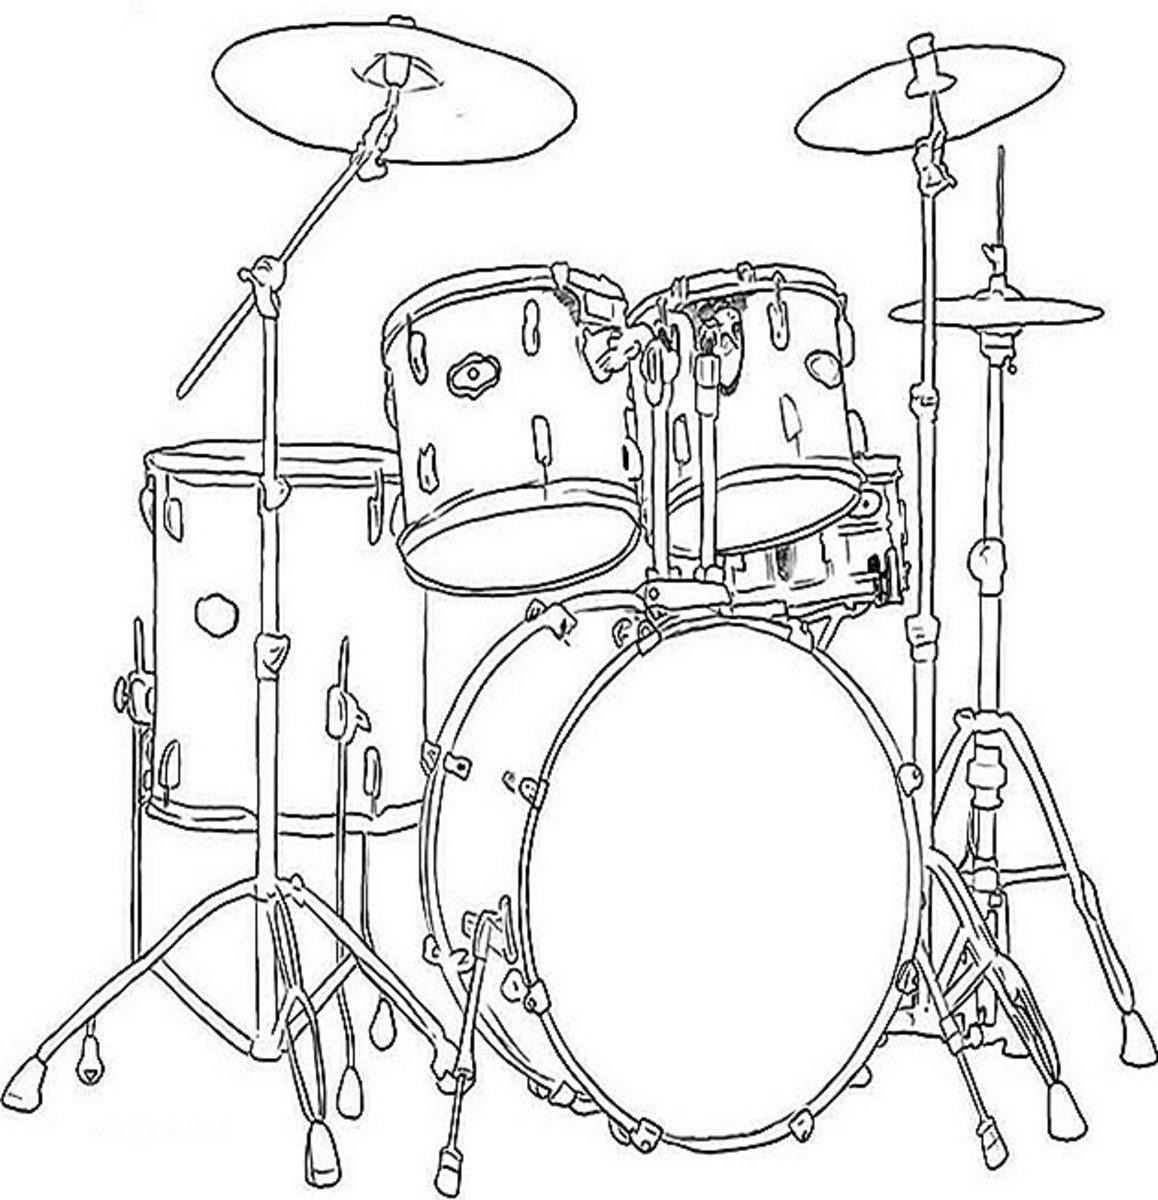 Musical Instruments Kids Coloring Pages Free Colouring Pictures to Print - Drums Set